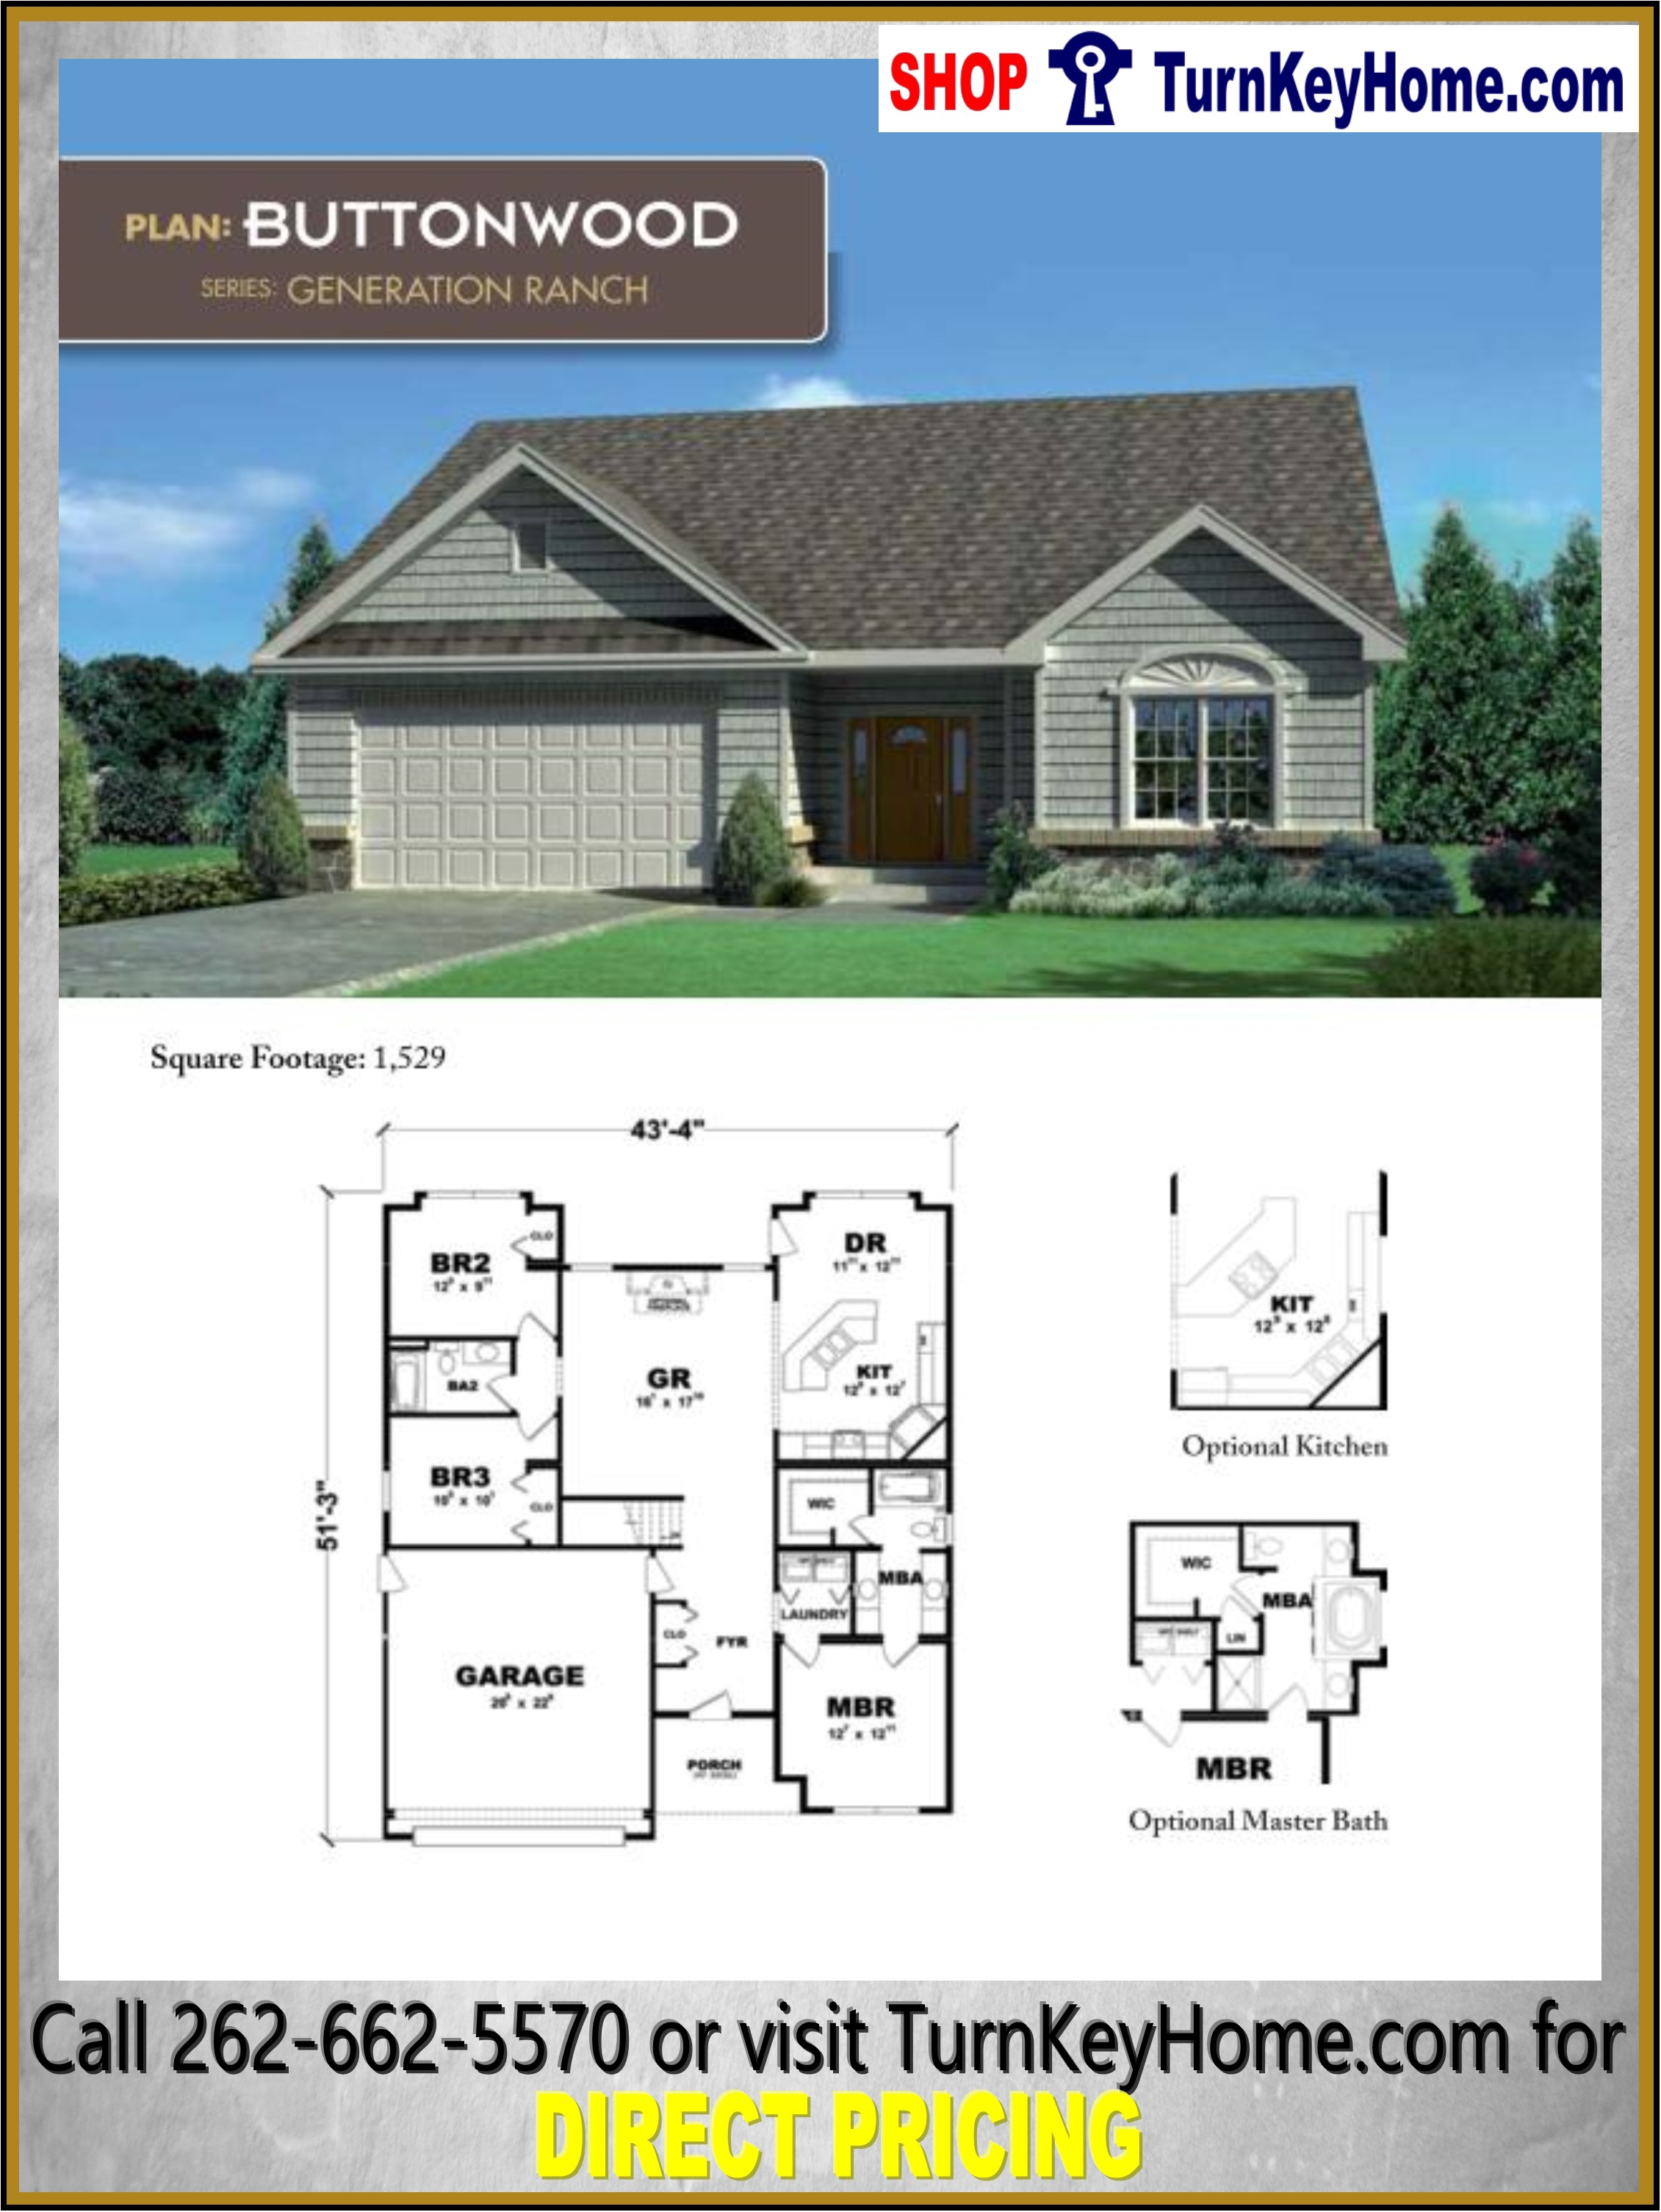 Tremendous Buttonwood Ranch Home 3 Bed 2 Bath Plan 1529 Sf Priced From Download Free Architecture Designs Remcamadebymaigaardcom